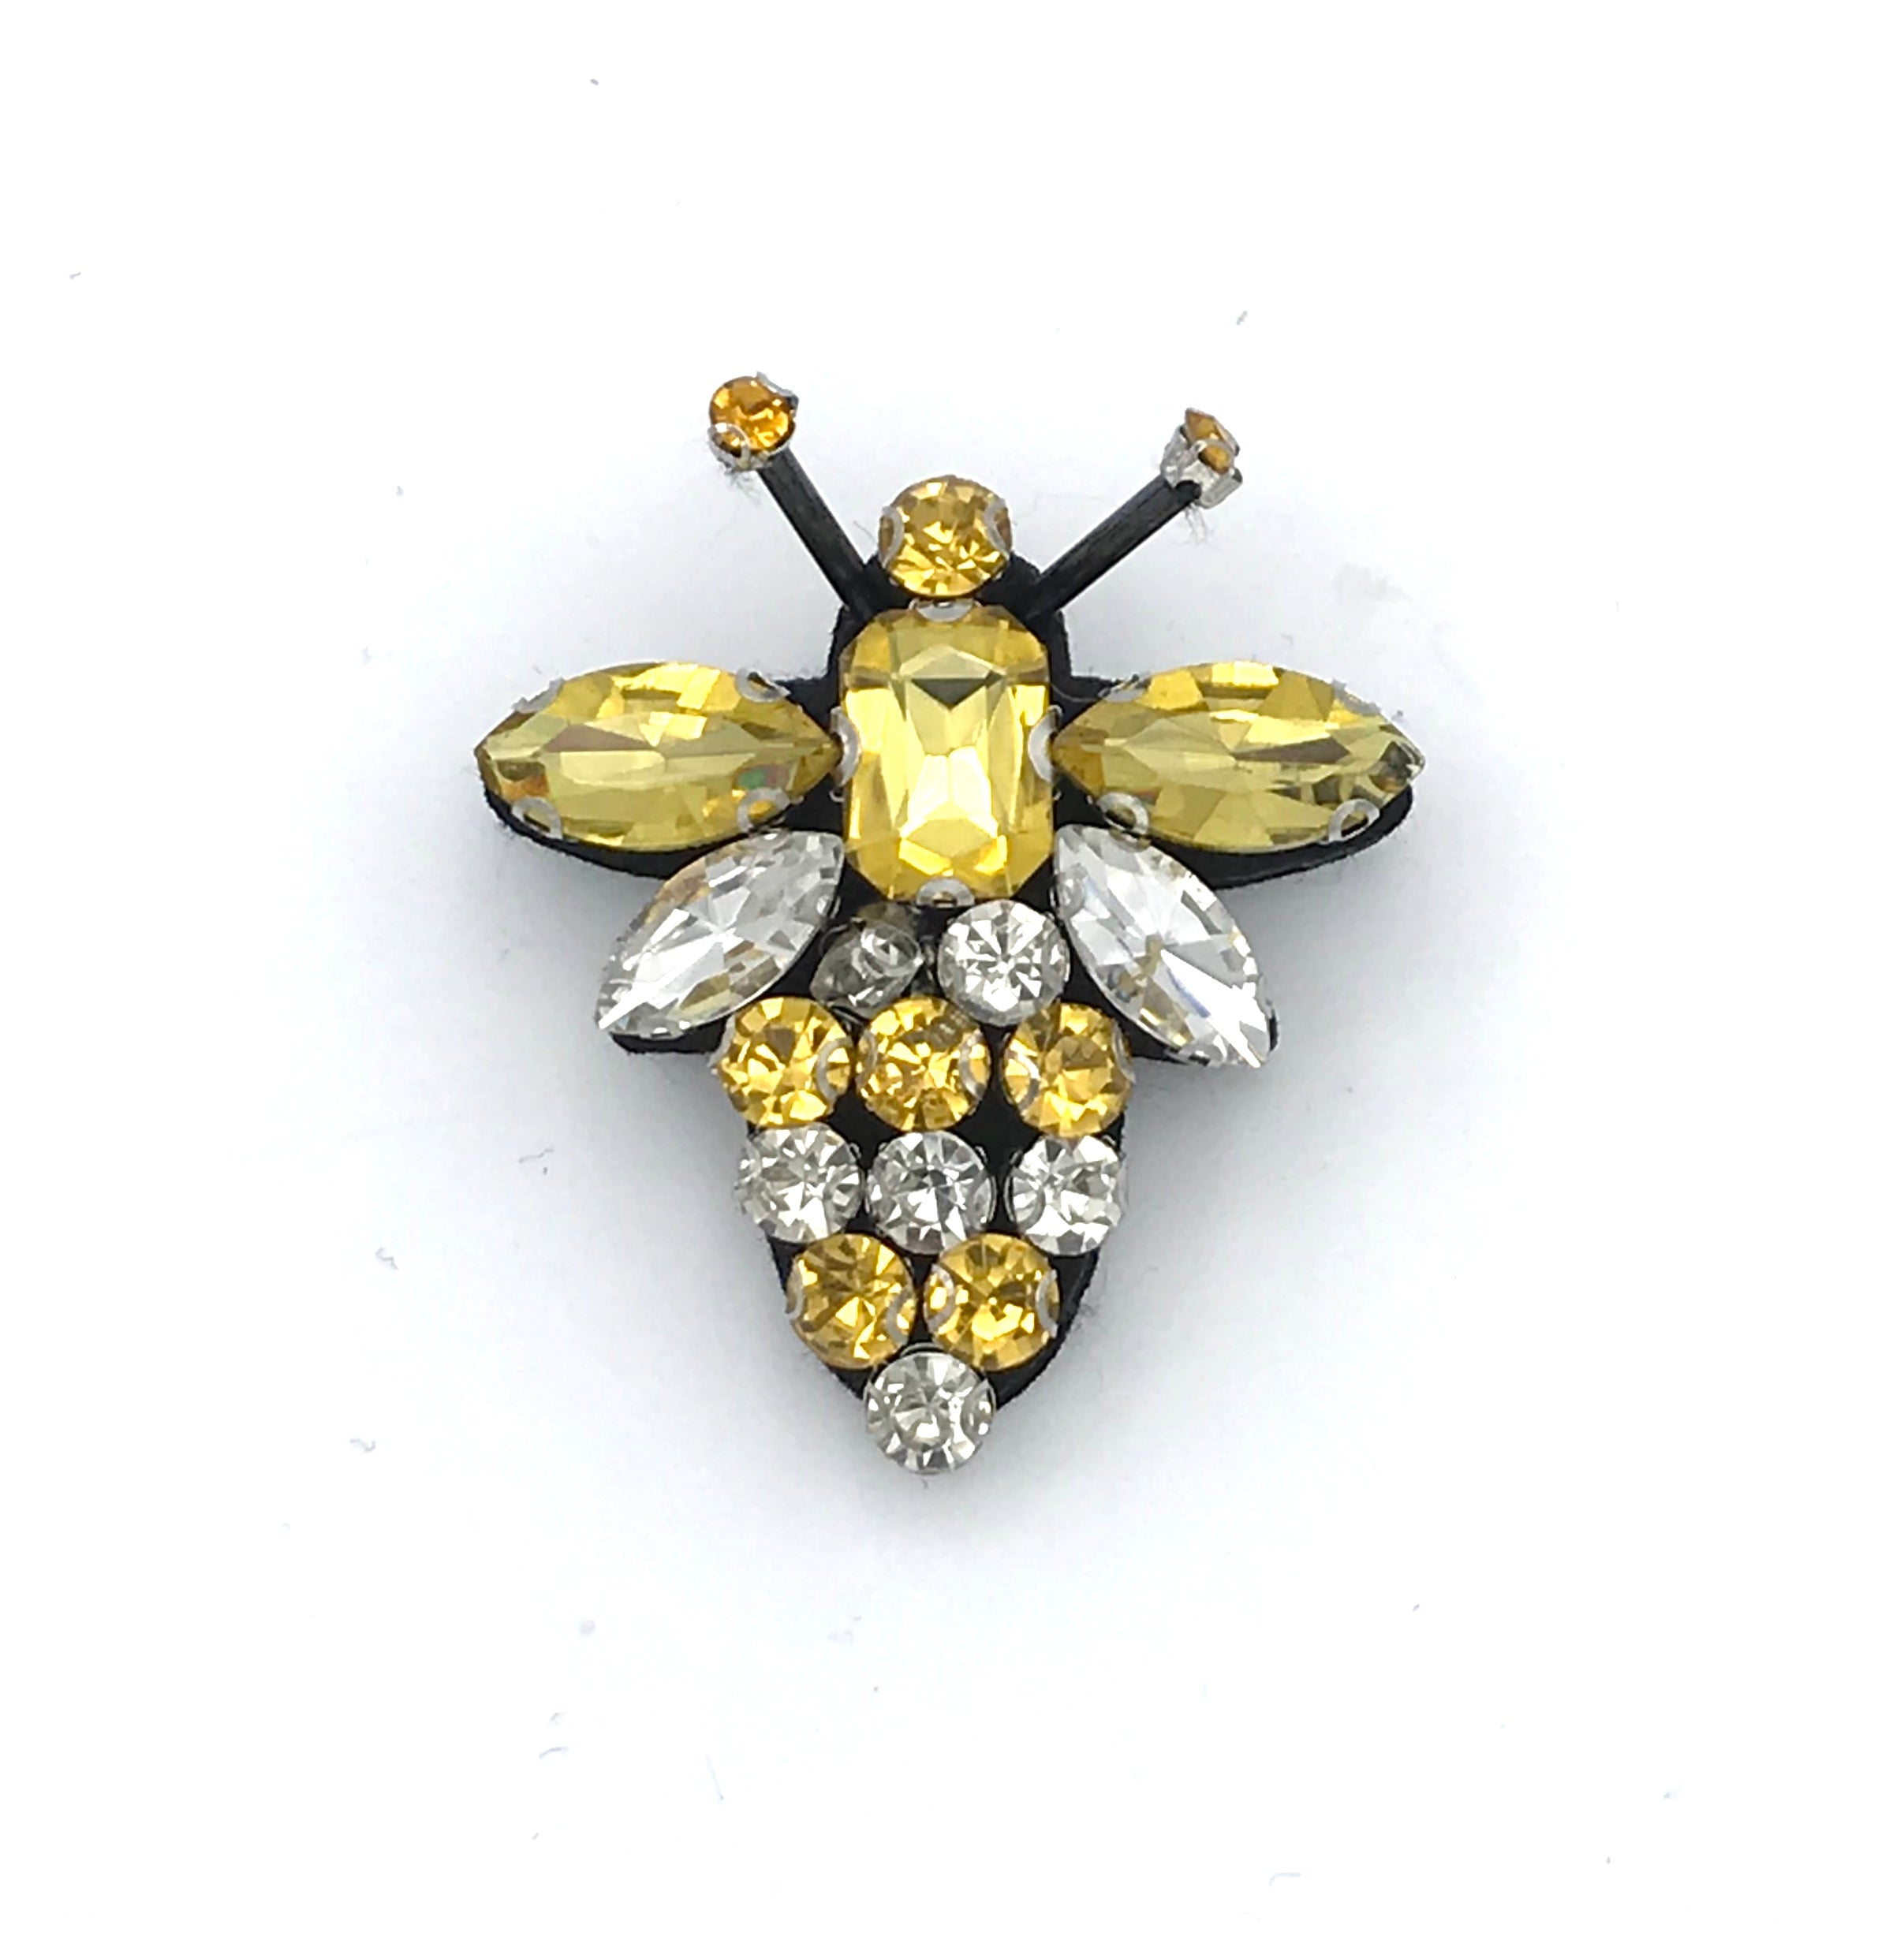 Giant queen bee pin in yellow